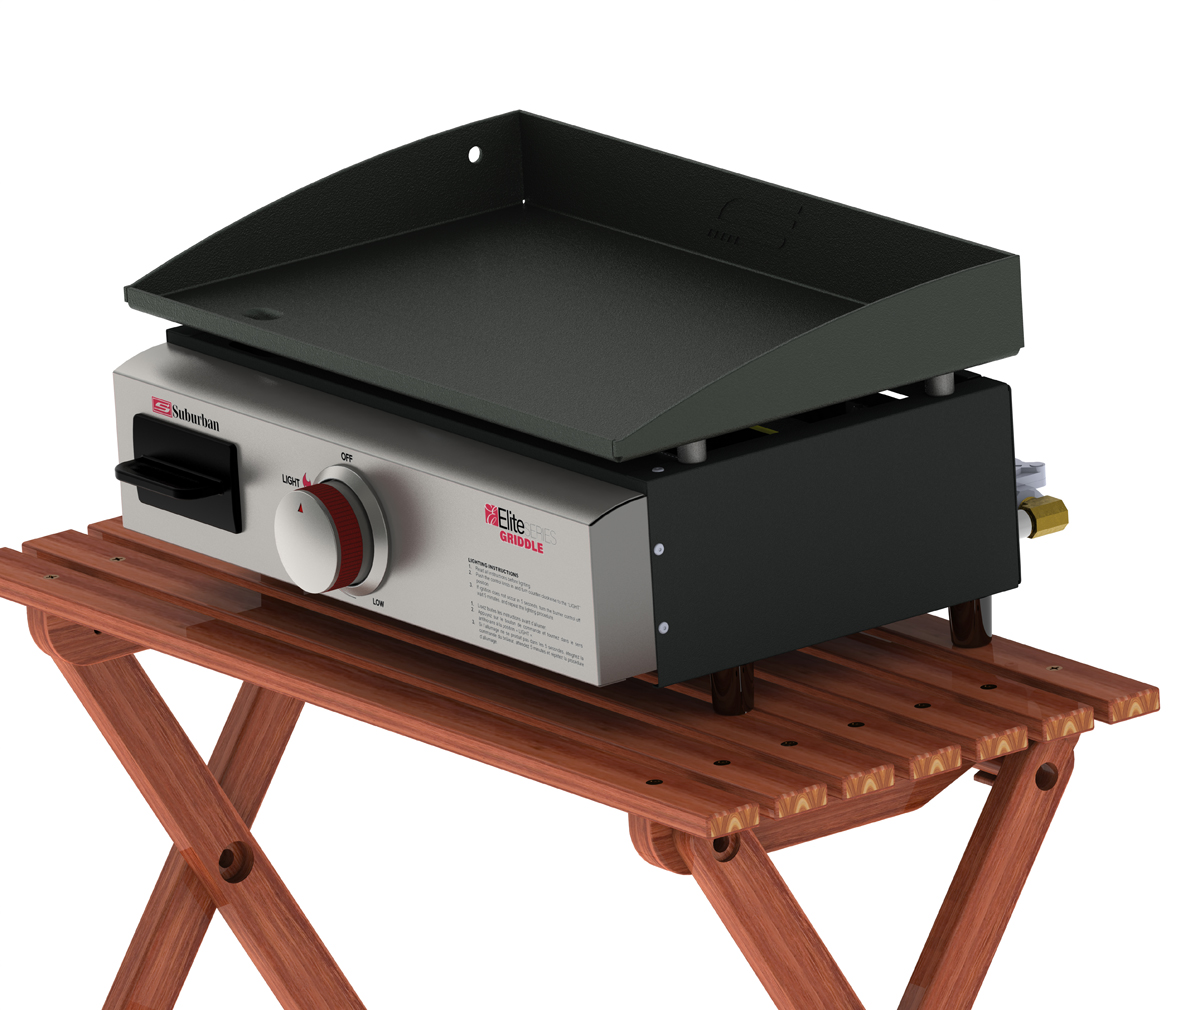 Introduction Of Its Elite Series Outdoor Griddle The Features A Cast Iron Plate For Universal Cooking And Grease Collection